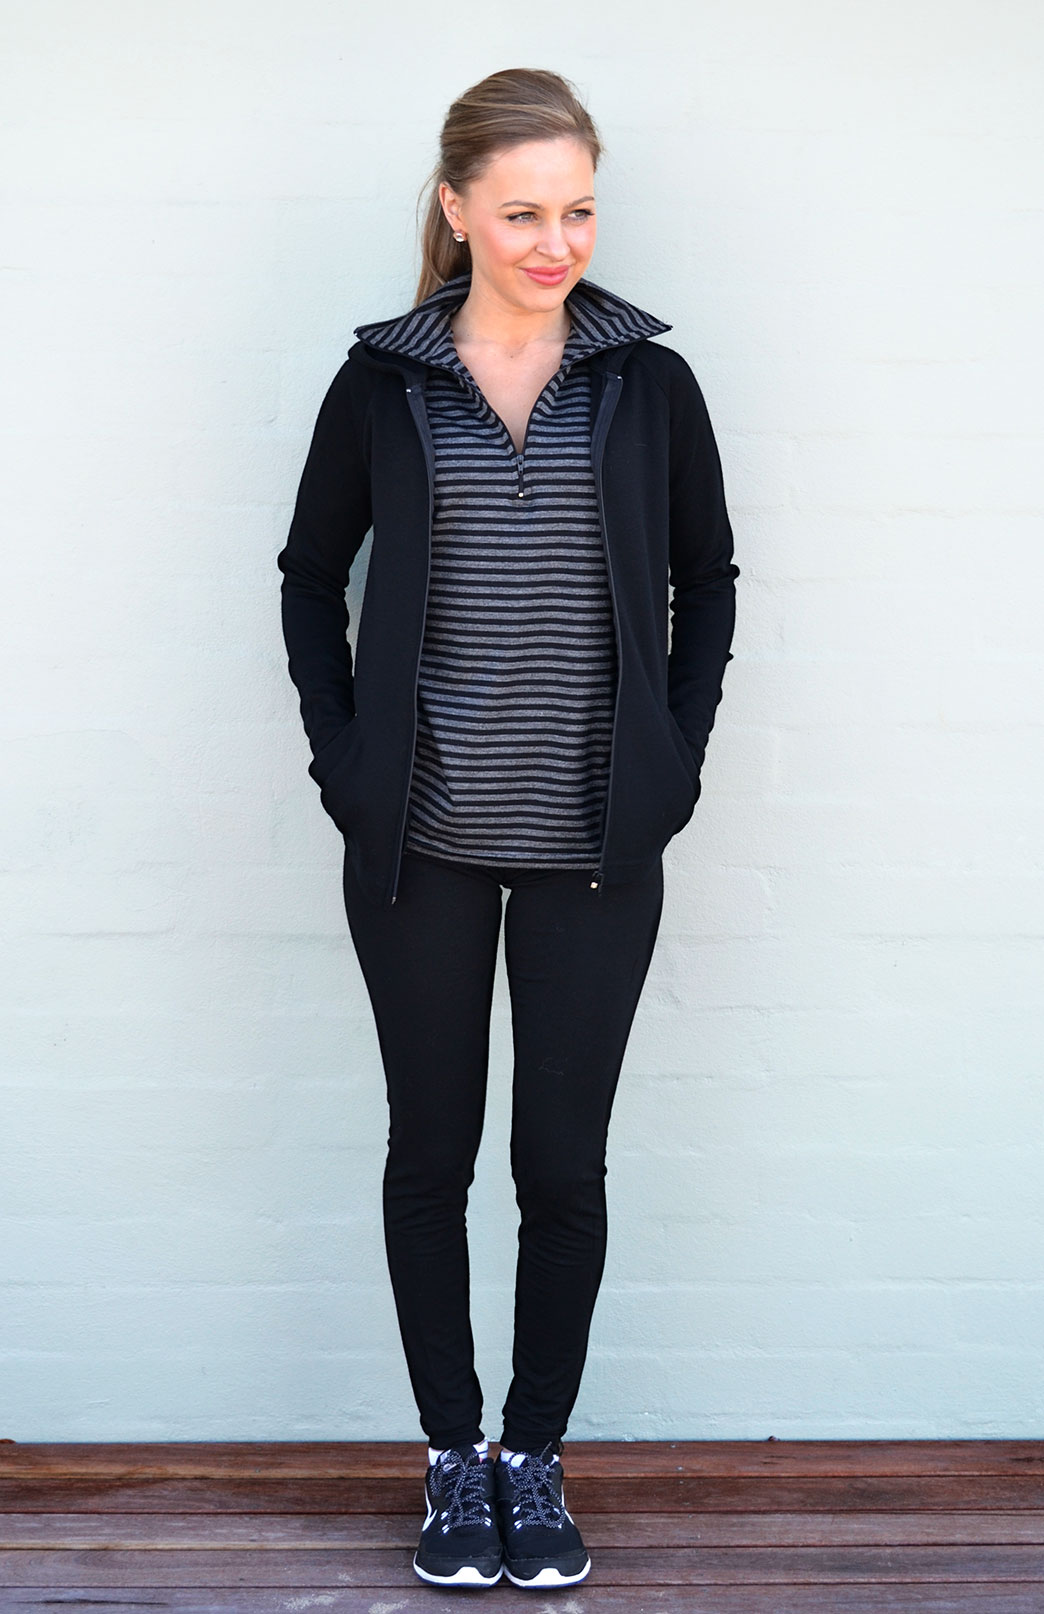 Zip Jacket with Hood - Heavyweight (360g) - Women's Black Wool Heavyweight Jacket with Hood, Thumb Holes and Pockets - Smitten Merino Tasmania Australia